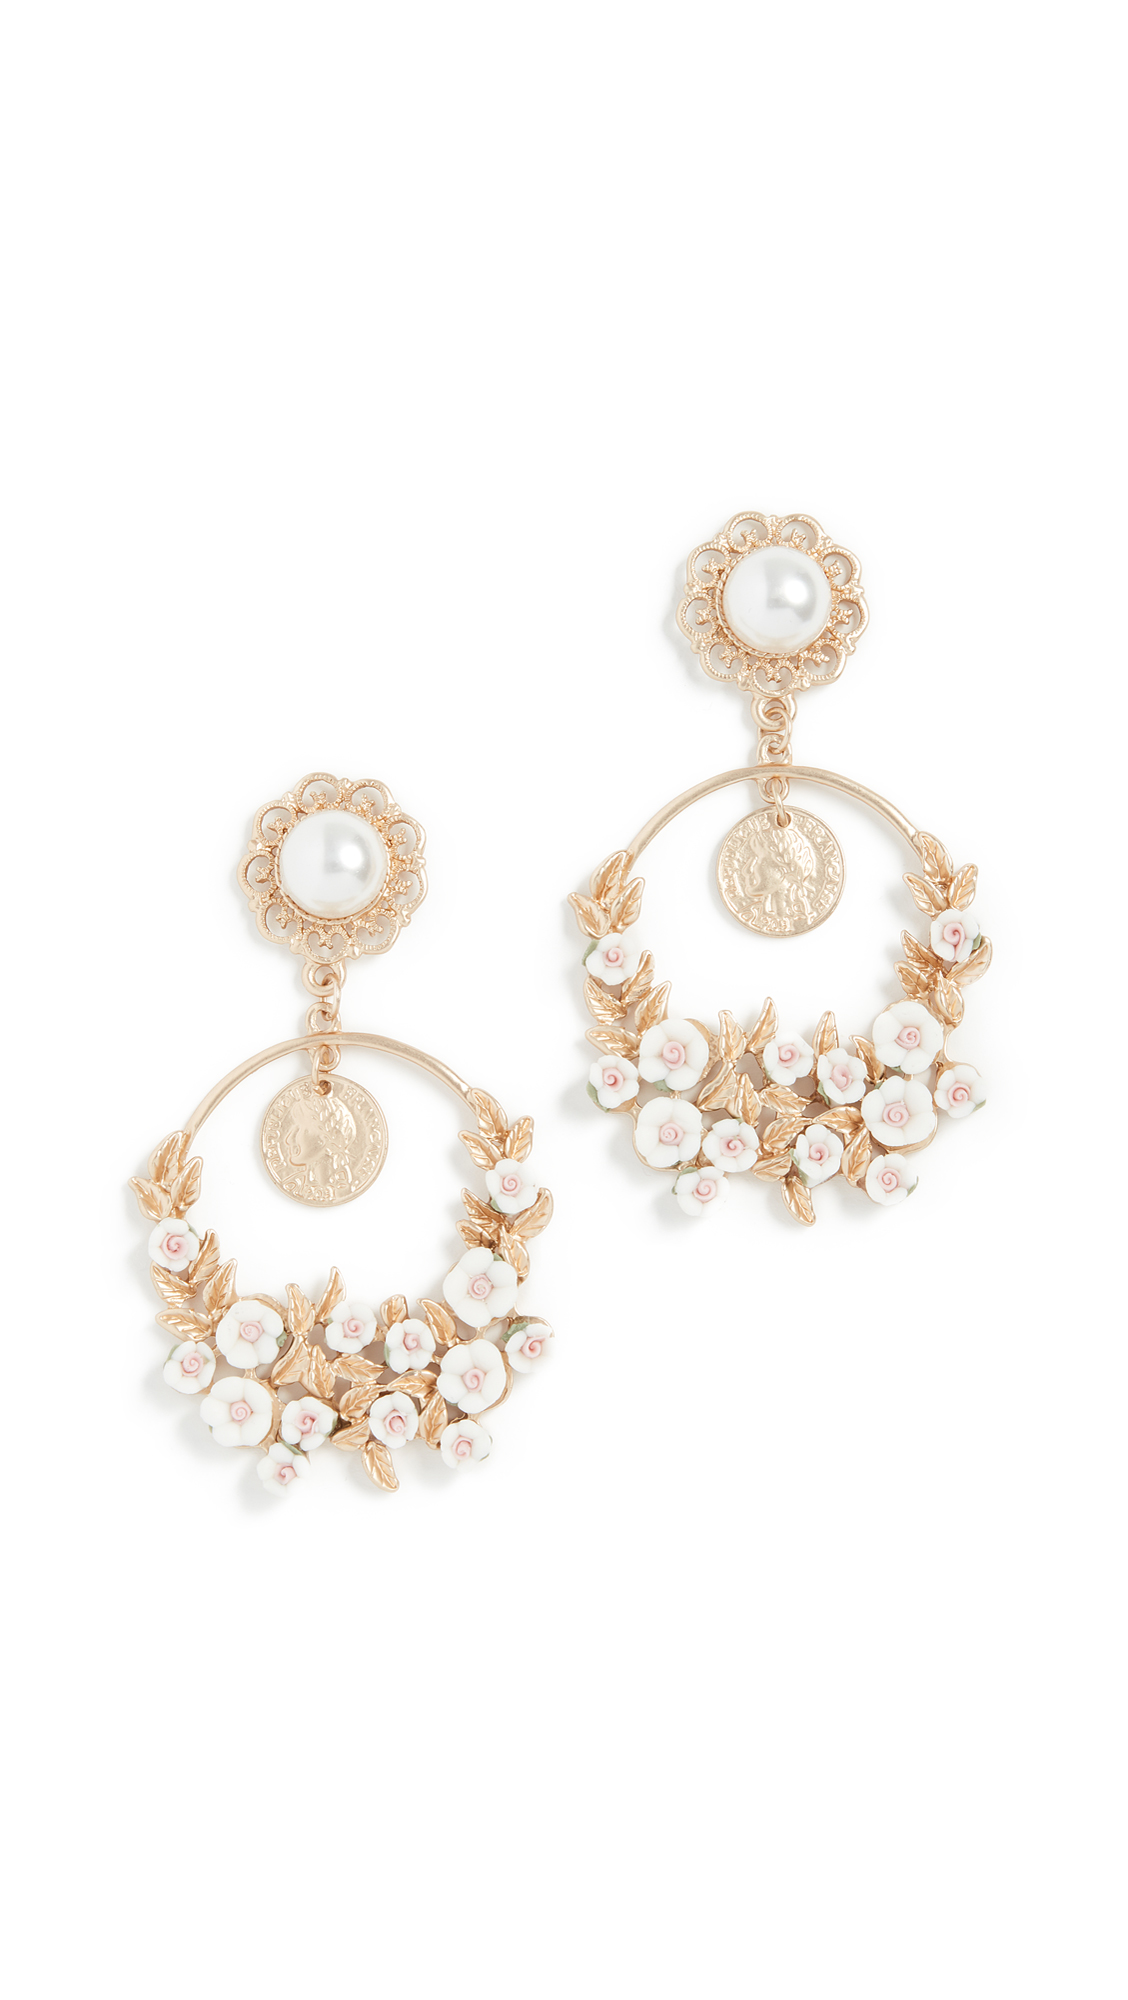 Shashi Summer Earrings Bz5qcVWRy